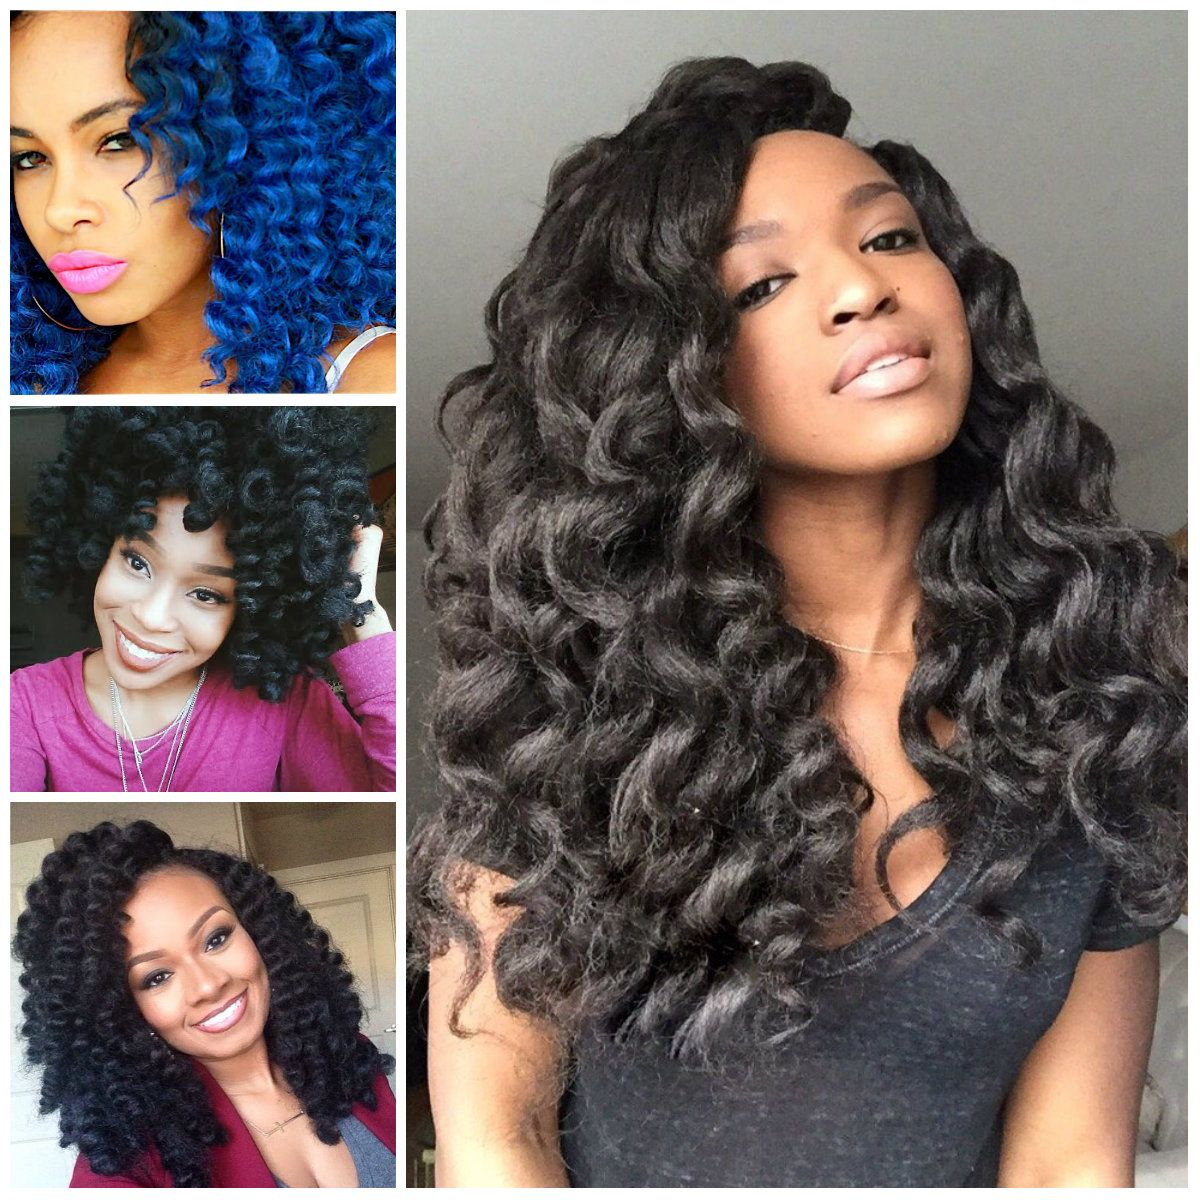 Crochet Braids Hairstyle Ideas For Black Women 2016 With Images